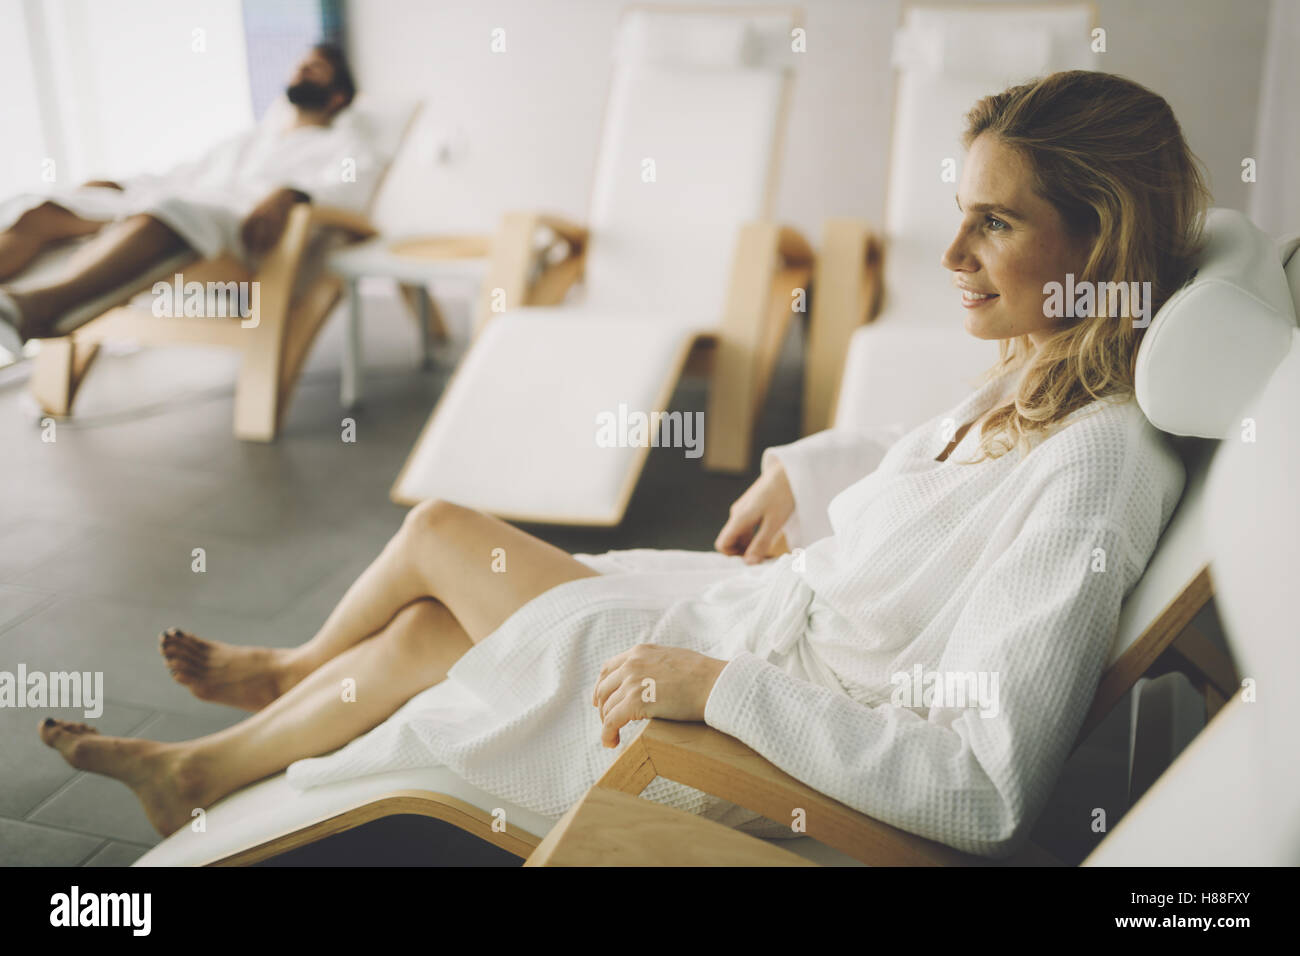 Beautiful woman relaxing in bathrobe in spa center - Stock Image